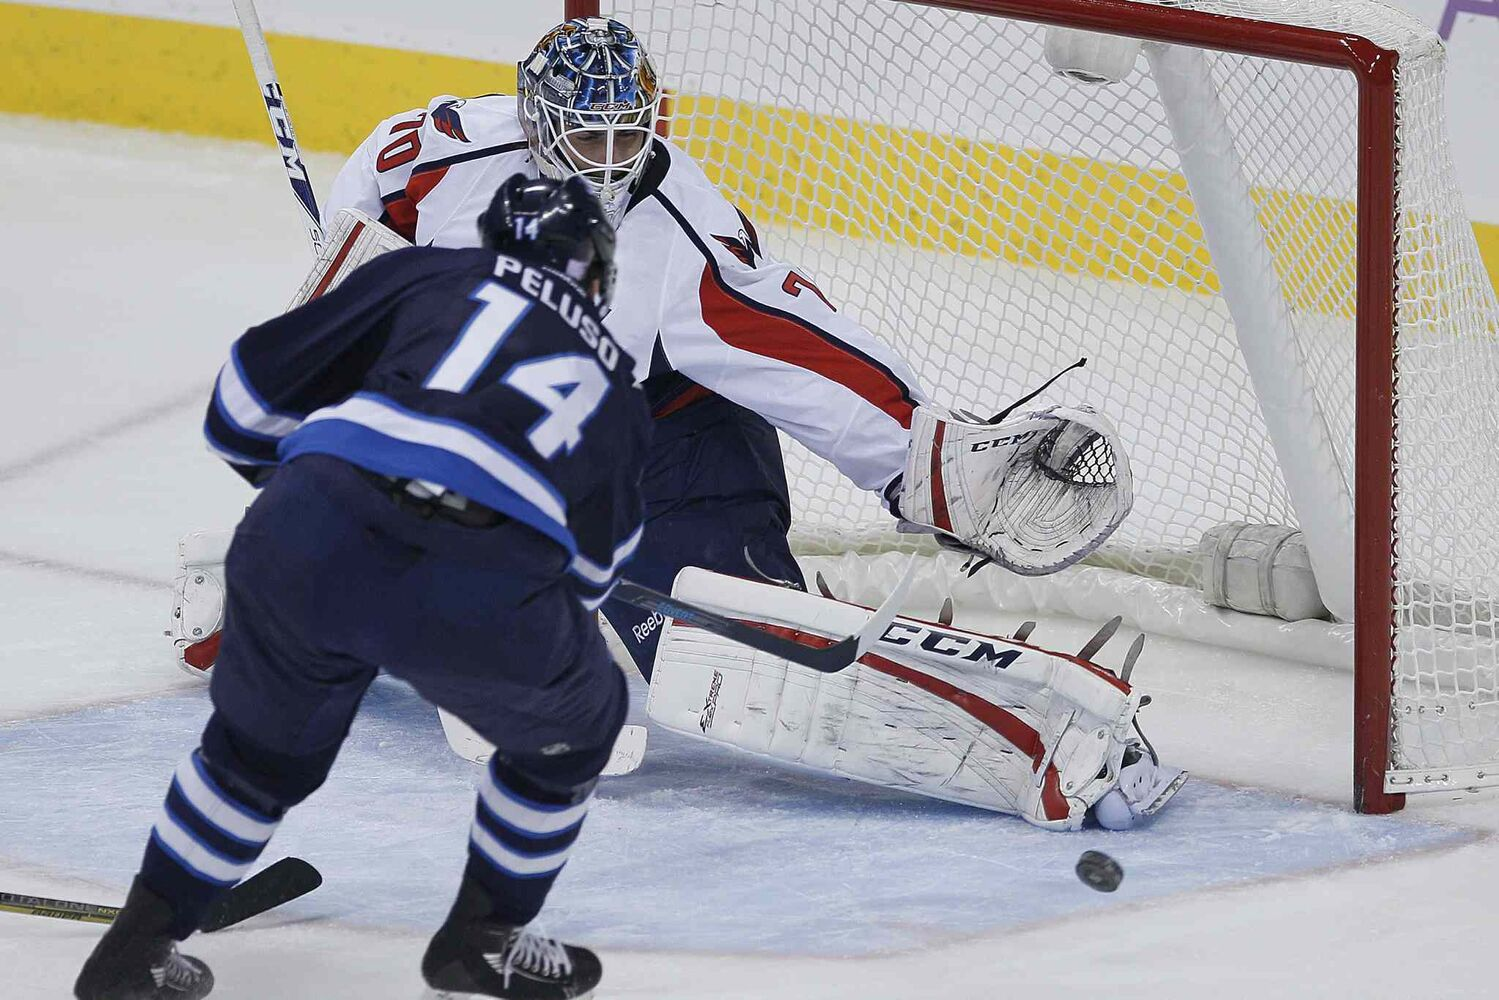 Winnipeg Jets forward Anthony Peluso misses this opportunity to score on Washington Capitals goaltender Braden Holtby during the first period.